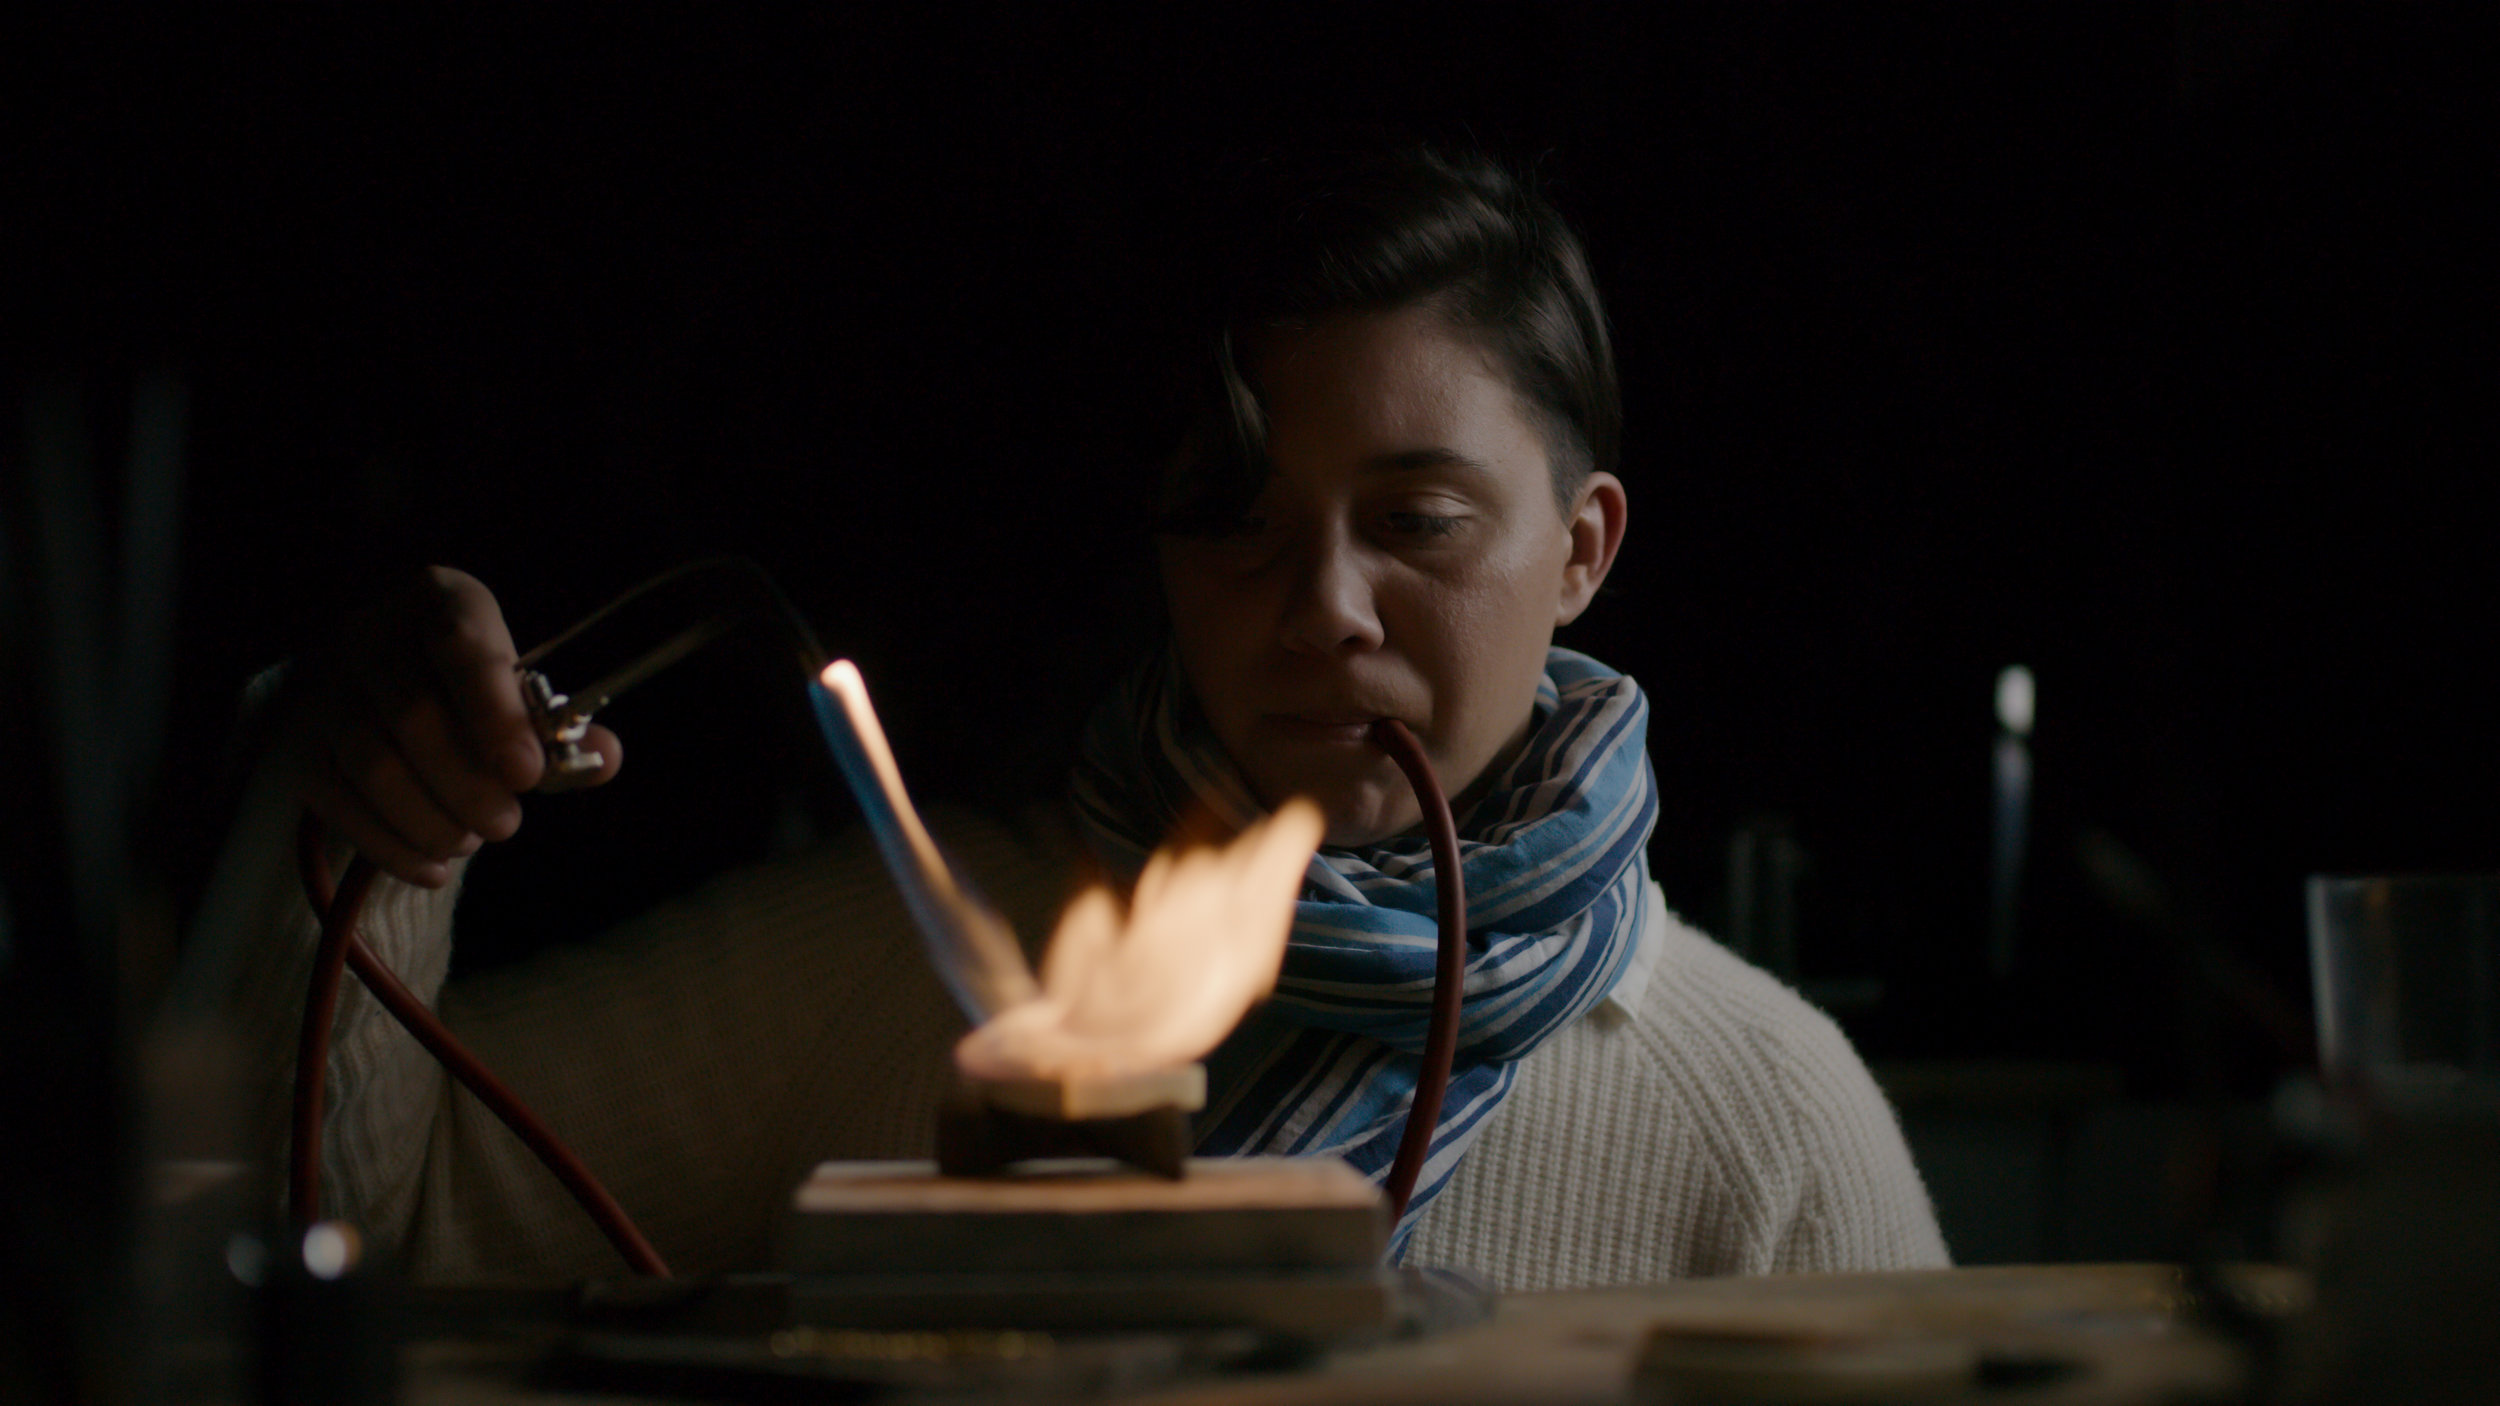 Teetelli shown in her atelier, using an early form of torch called a blowpipe torch in which the user breathes oxygen into the flame, to control the temperature.